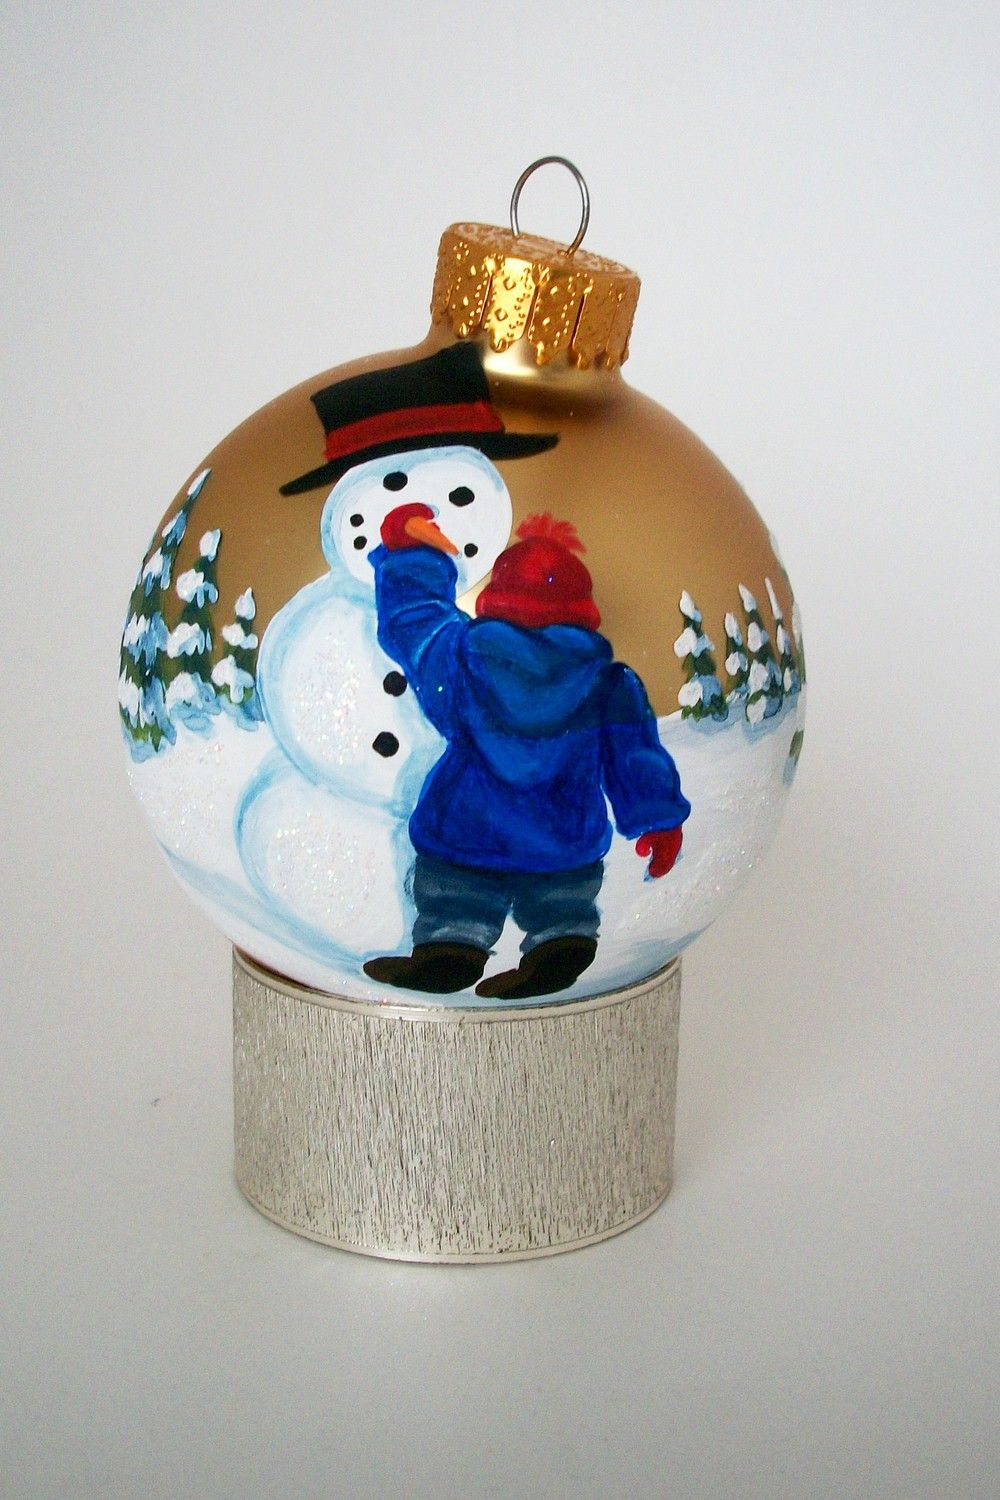 Hand Painted Christmas Ornament My Snowman Painted Christmas Ornaments Diy Christmas Ornaments Hand Painted Ornaments